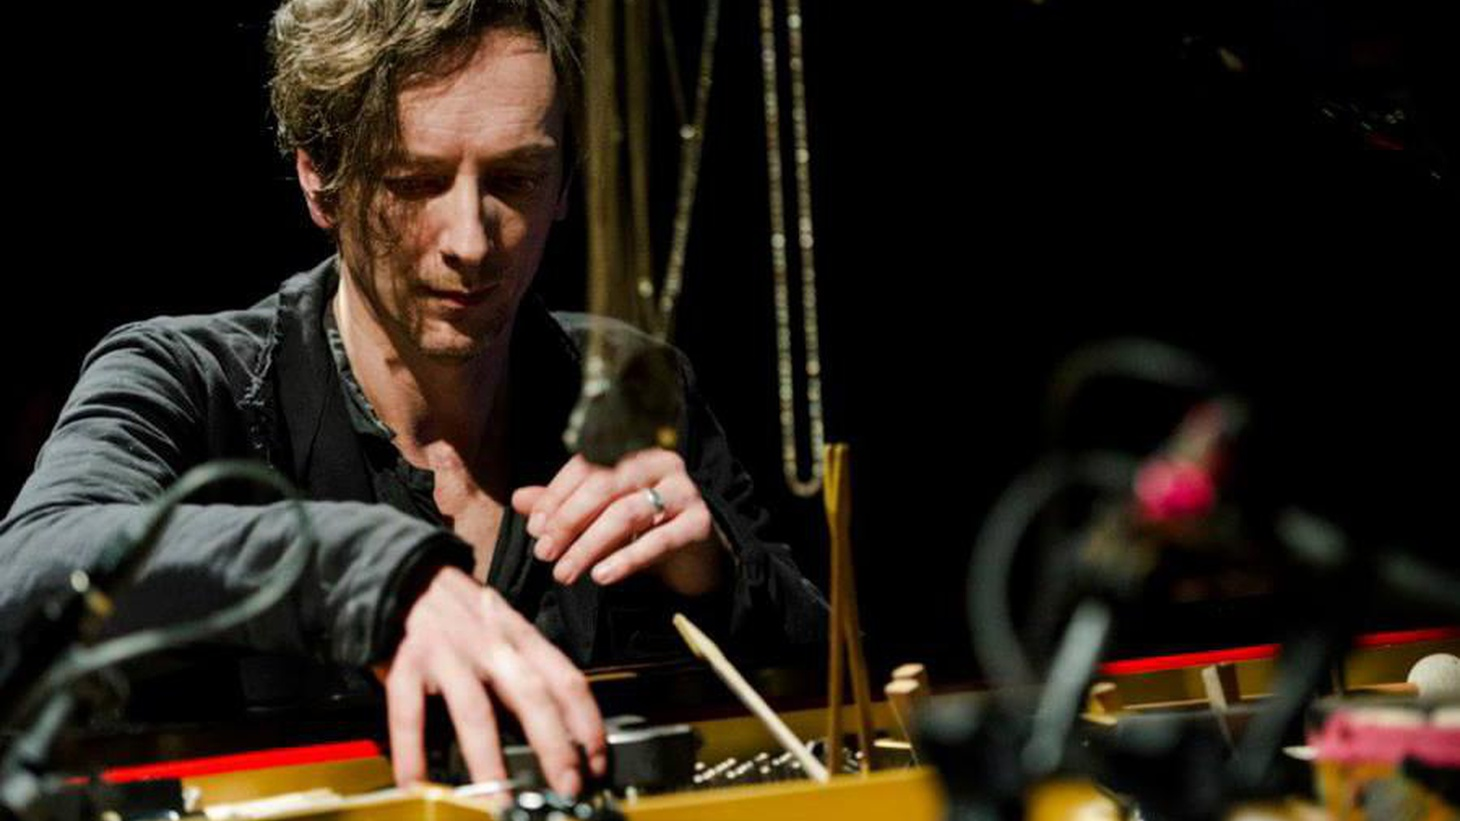 Hauschka is an experimental pianist based in Dusseldorf who integrates an assortment of toys into his piano playing.